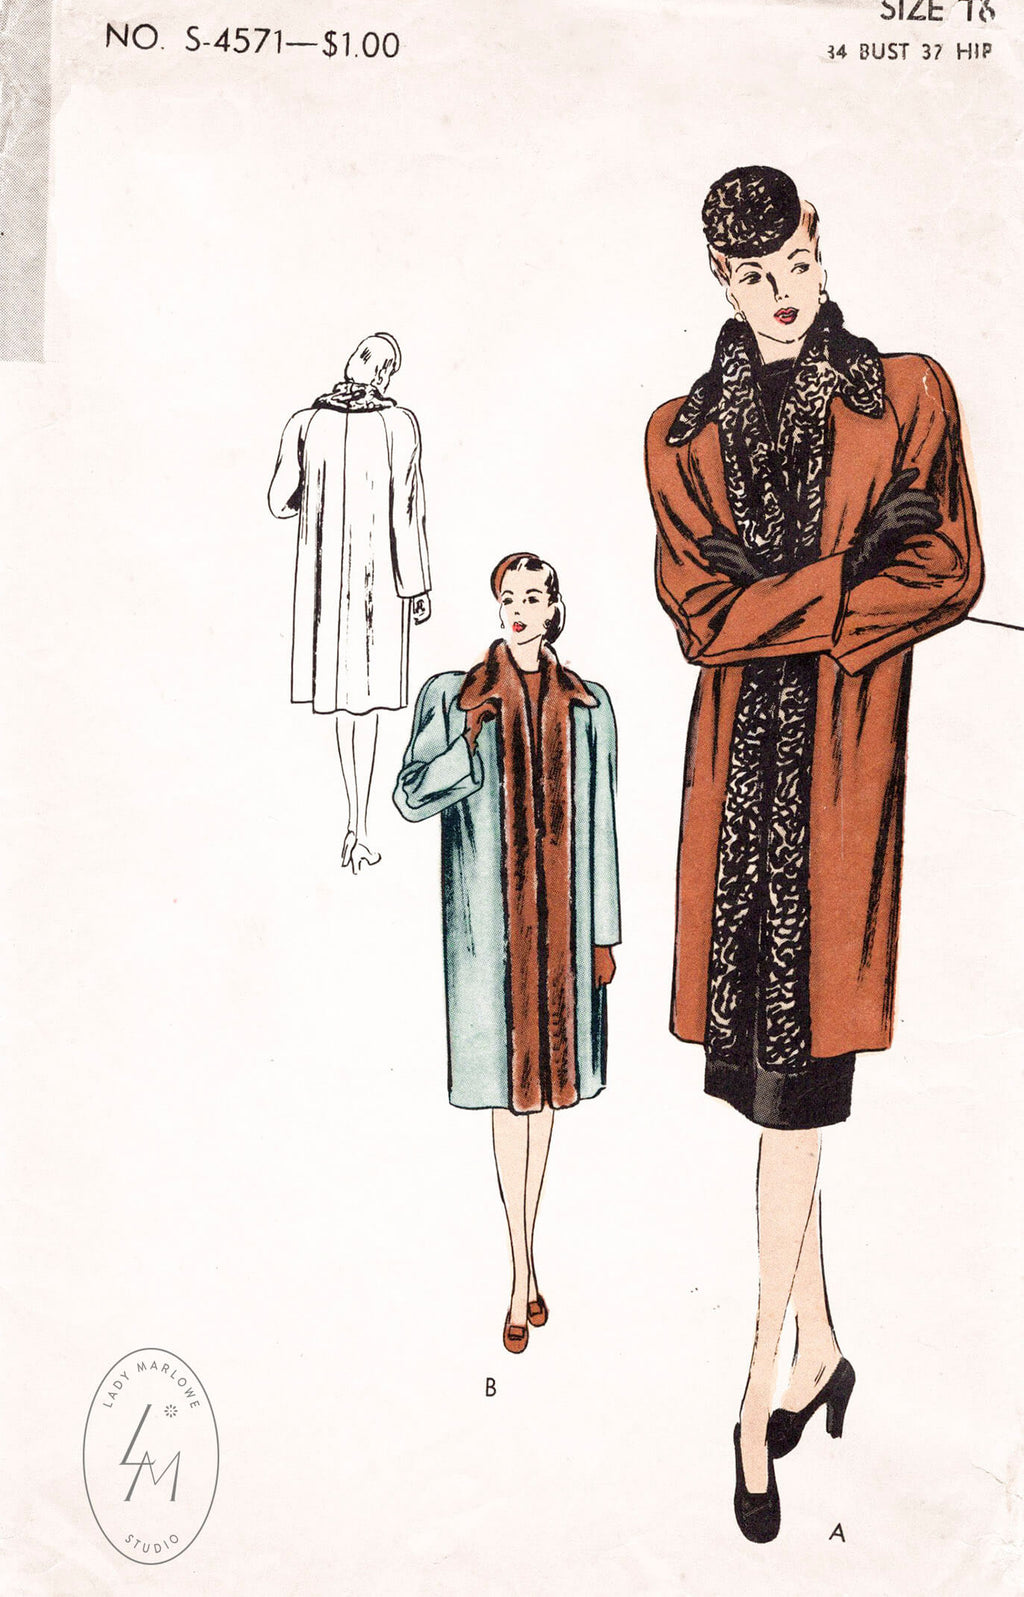 Vogue S-4571 1940s coat sewing pattern